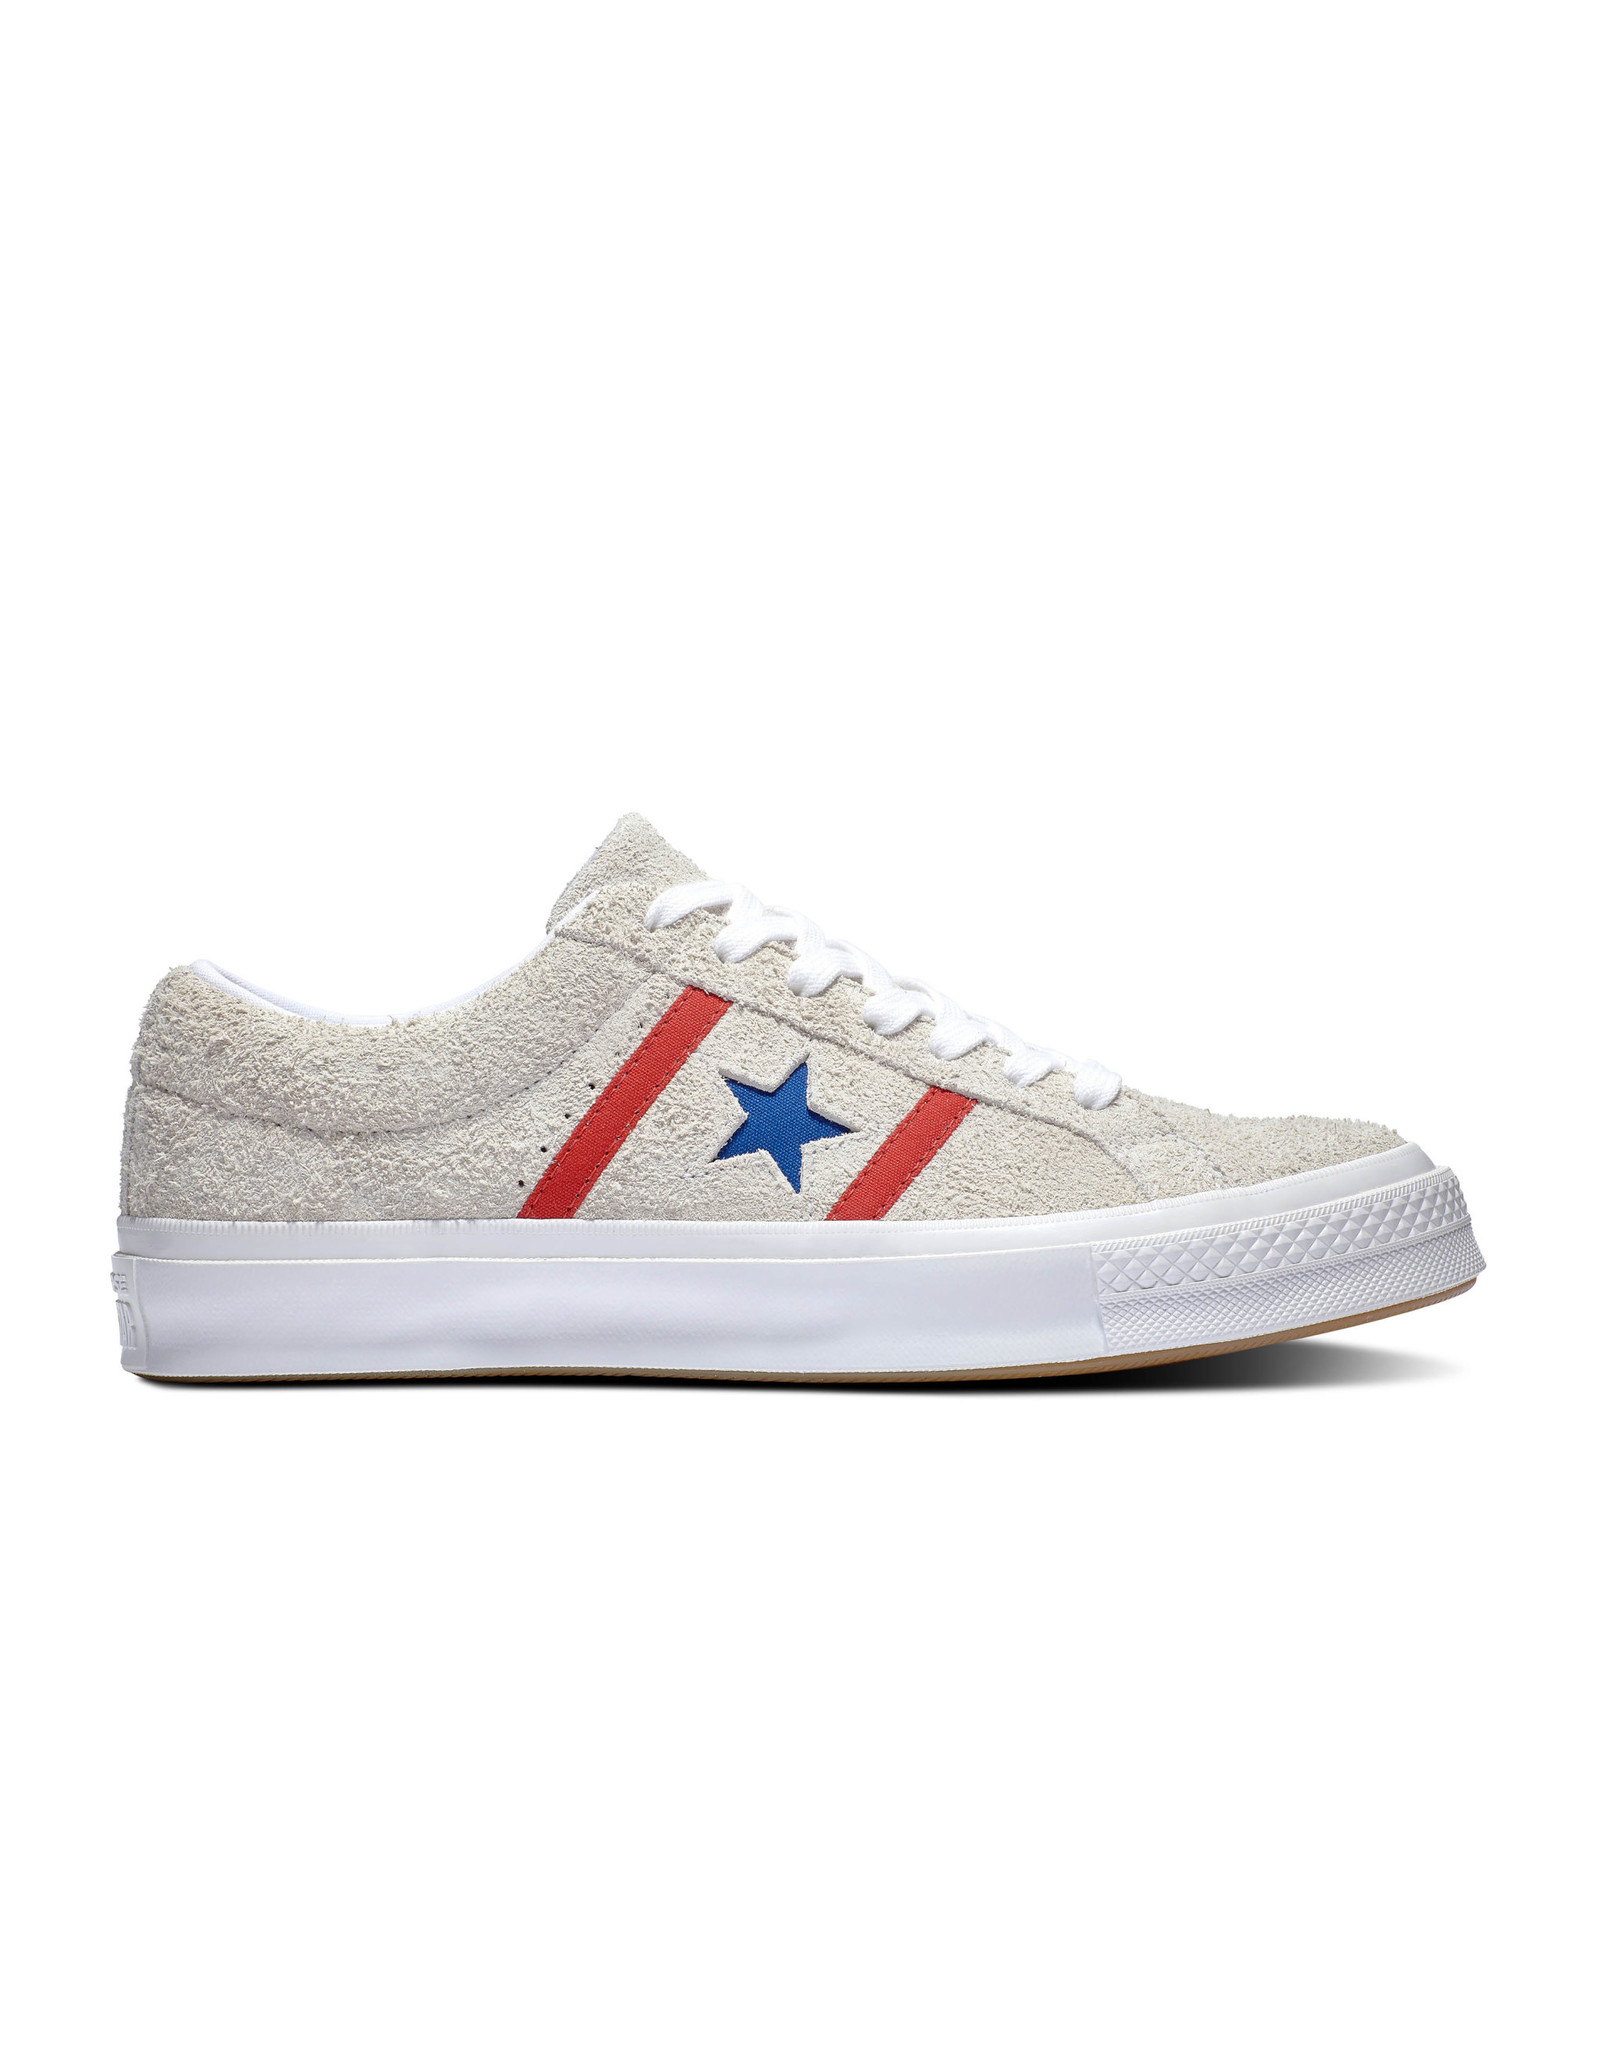 CONVERSE ONE STAR ACADEMY OX suède WHITE/ENAMEL RED C987WR-164390C